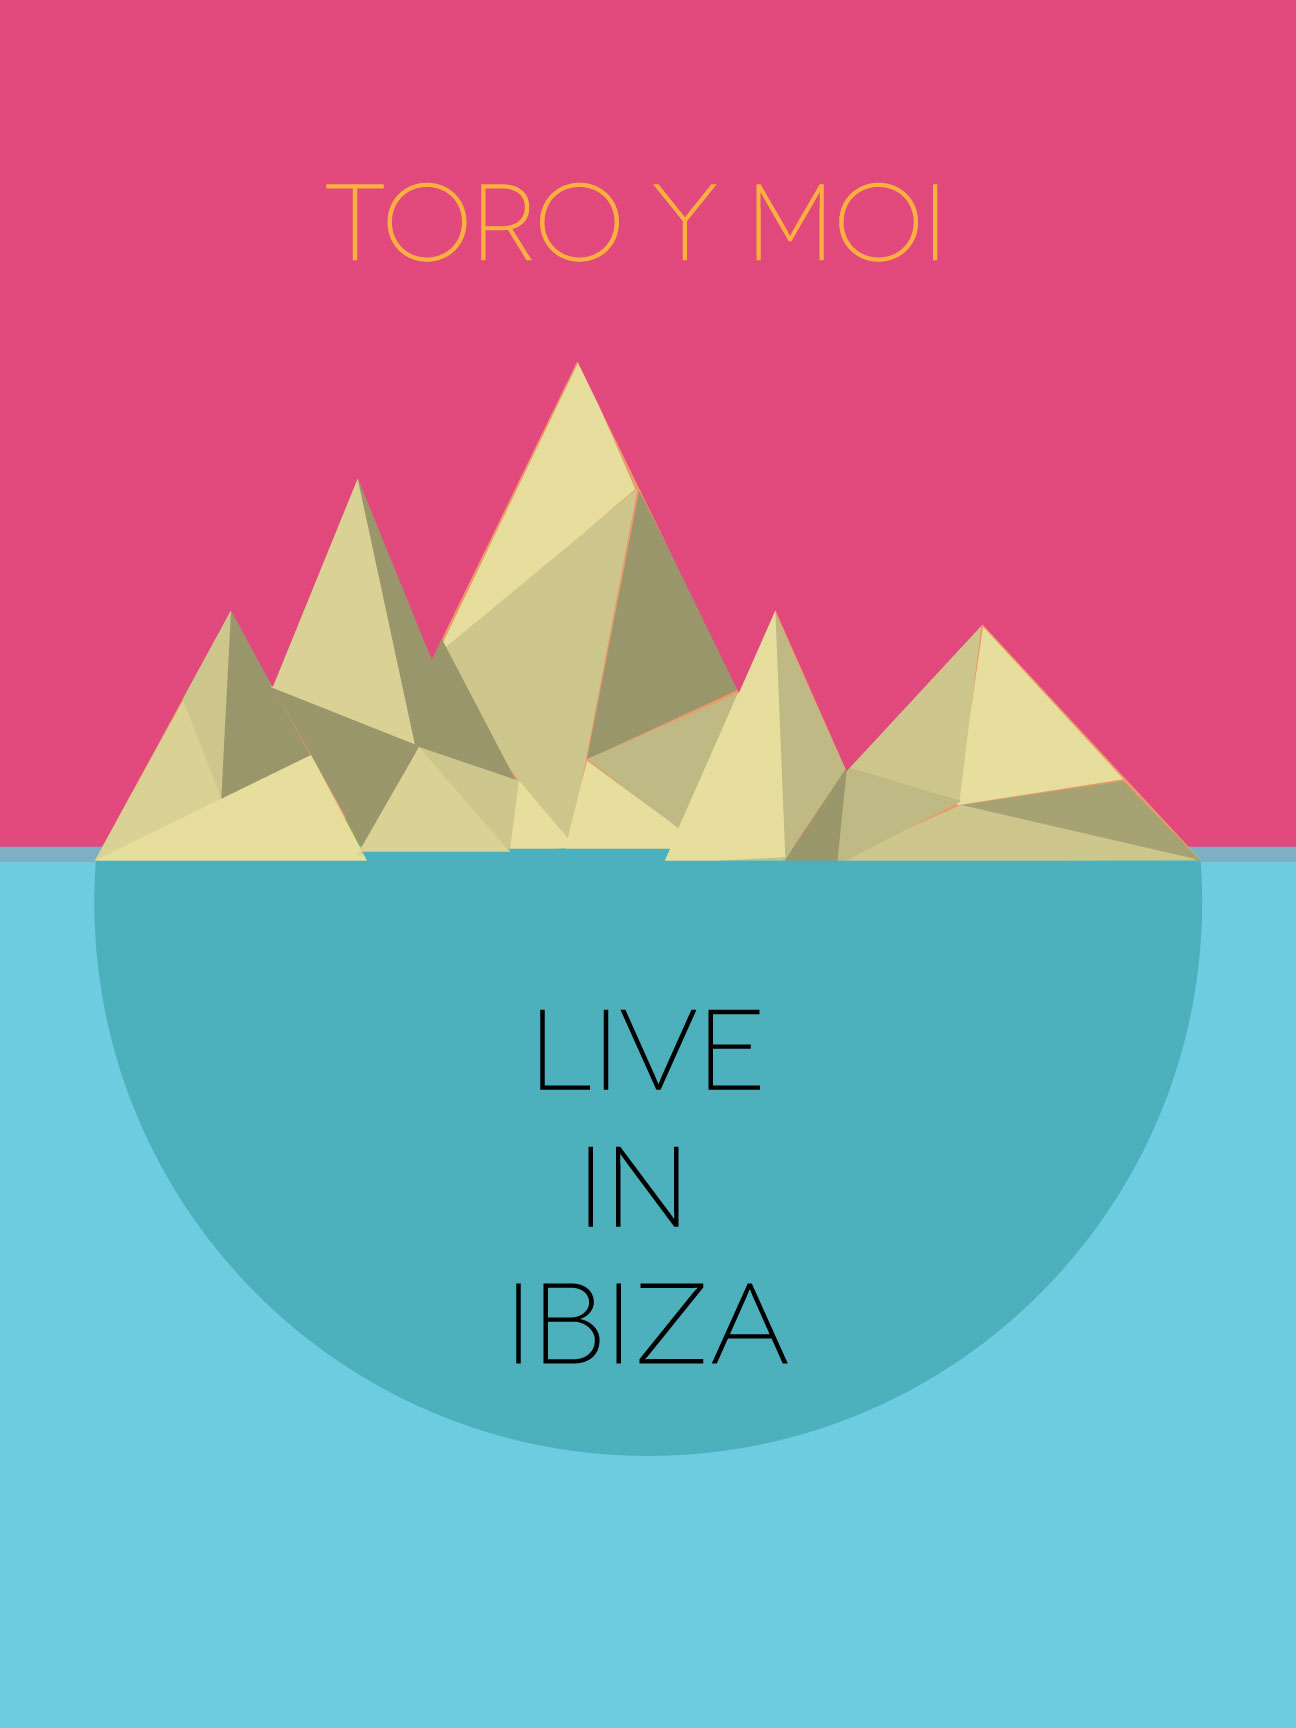 Toro y Moi Live in Ibiza - image 1 - student project